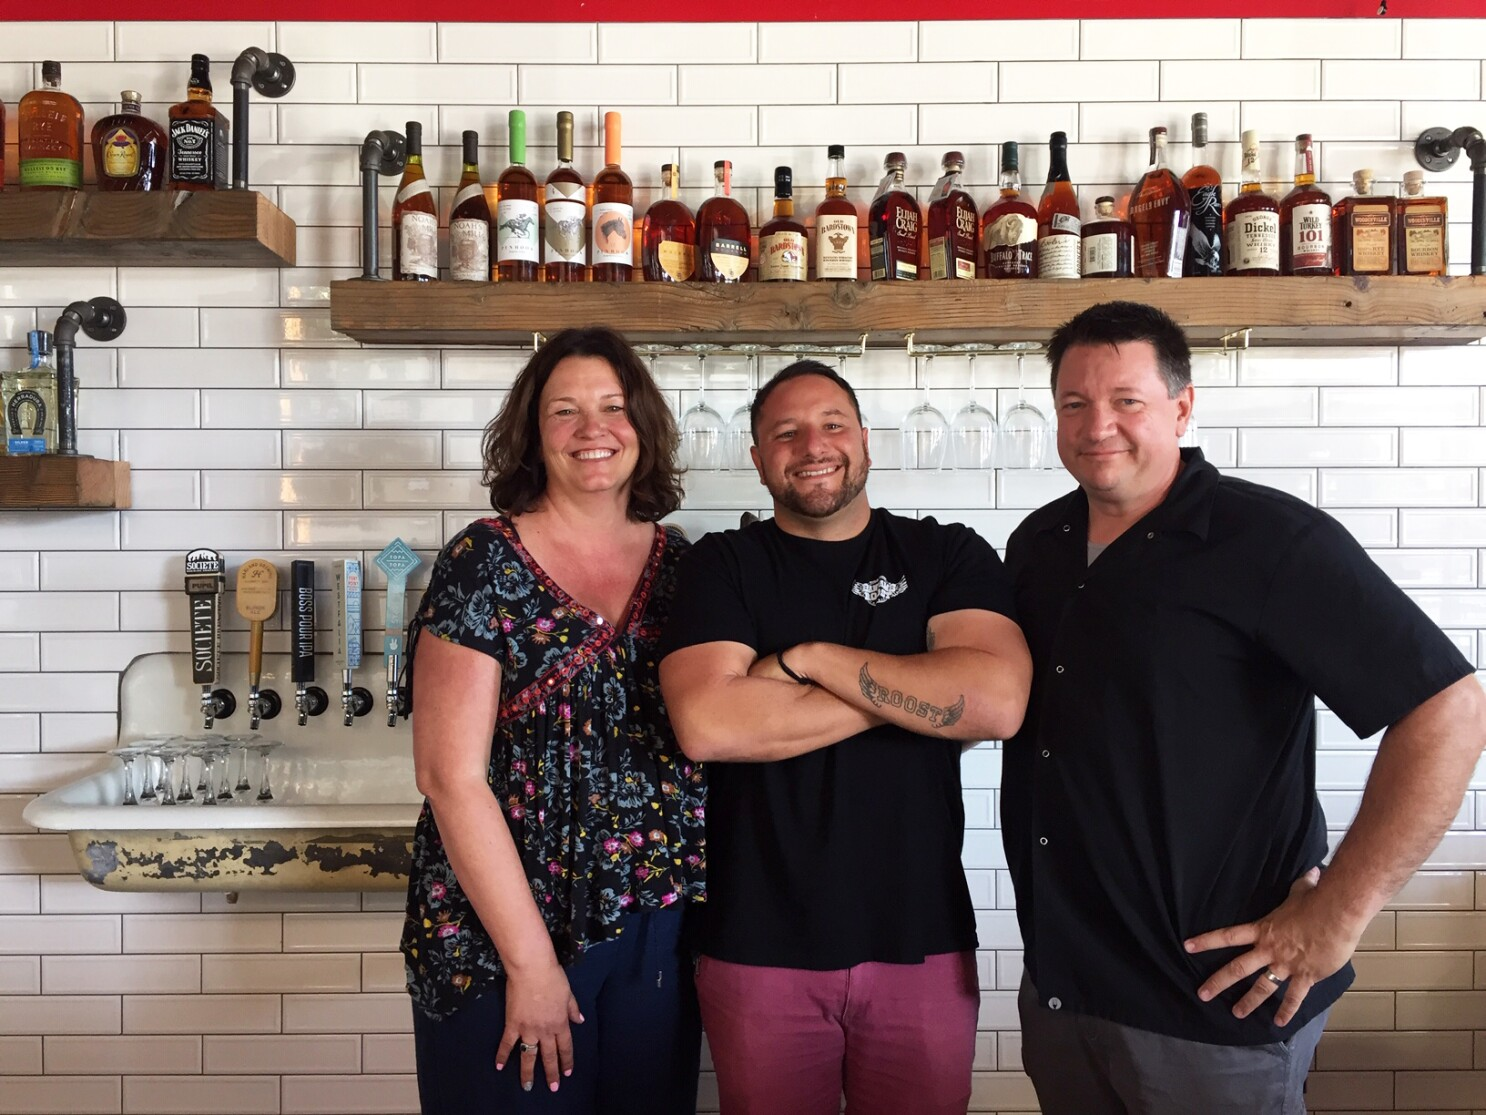 Flying Pig duo and new partner opening Bantam's Roost pub in Bressi Ranch